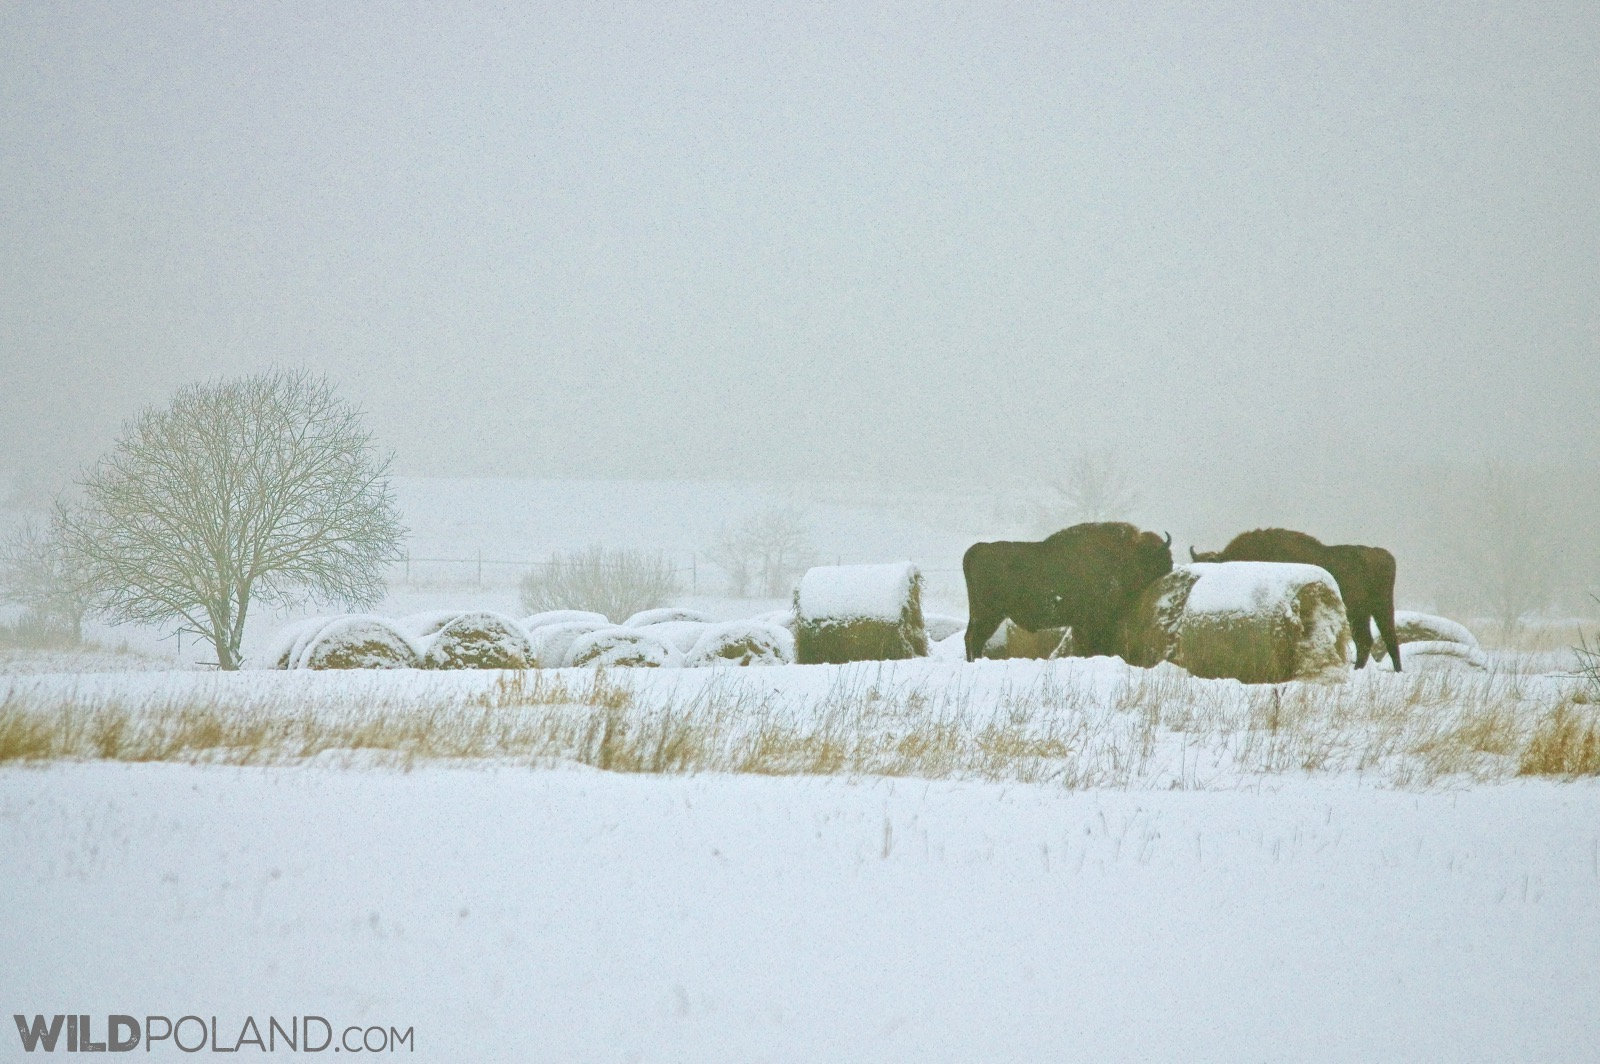 Bison at the winter meadow, Białowieża, photo by Andrzej Petryna